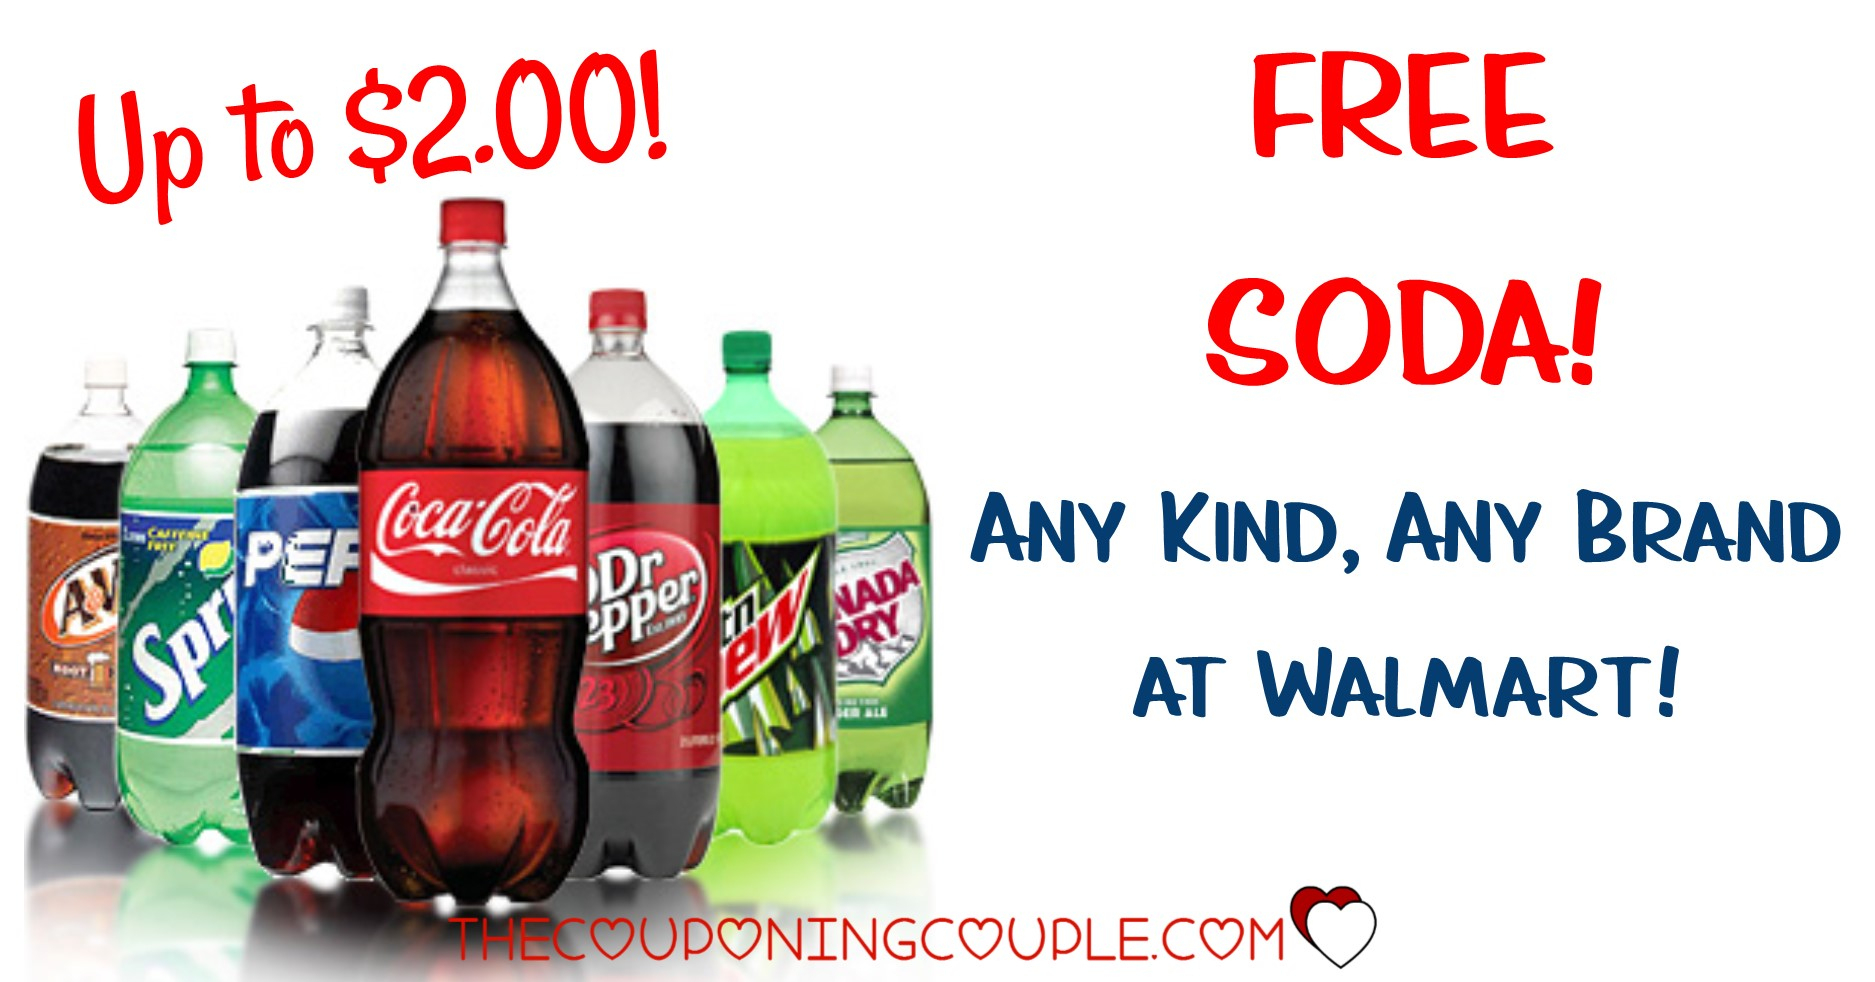 Free Soda Any Brand @ Walmart Before 2/9/19 - Free Printable Coupons For Coca Cola Products